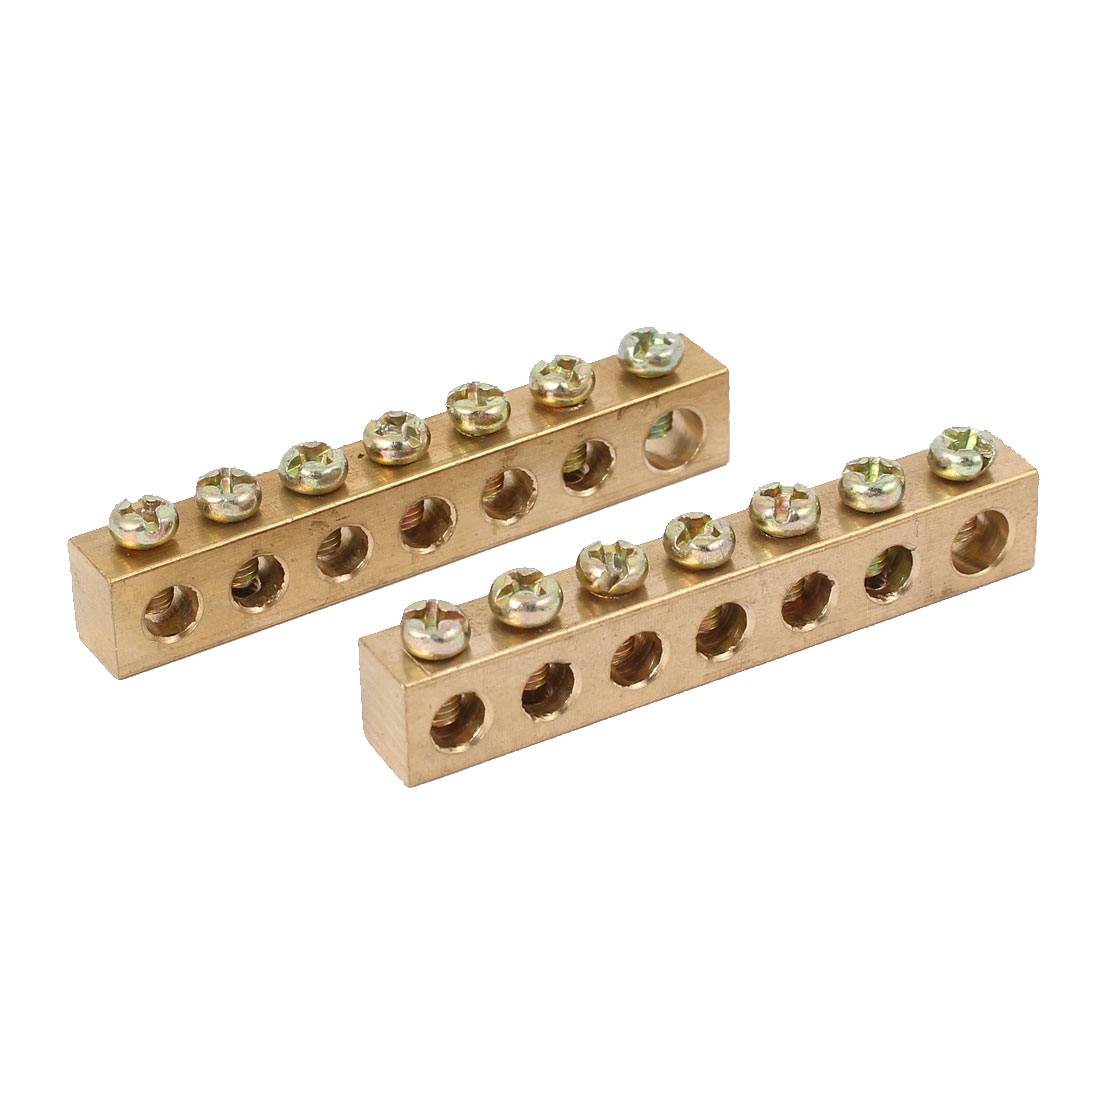 7 Holes Electrical Distribution Wire Screw Terminal Copper Neutral Bar 2pcs